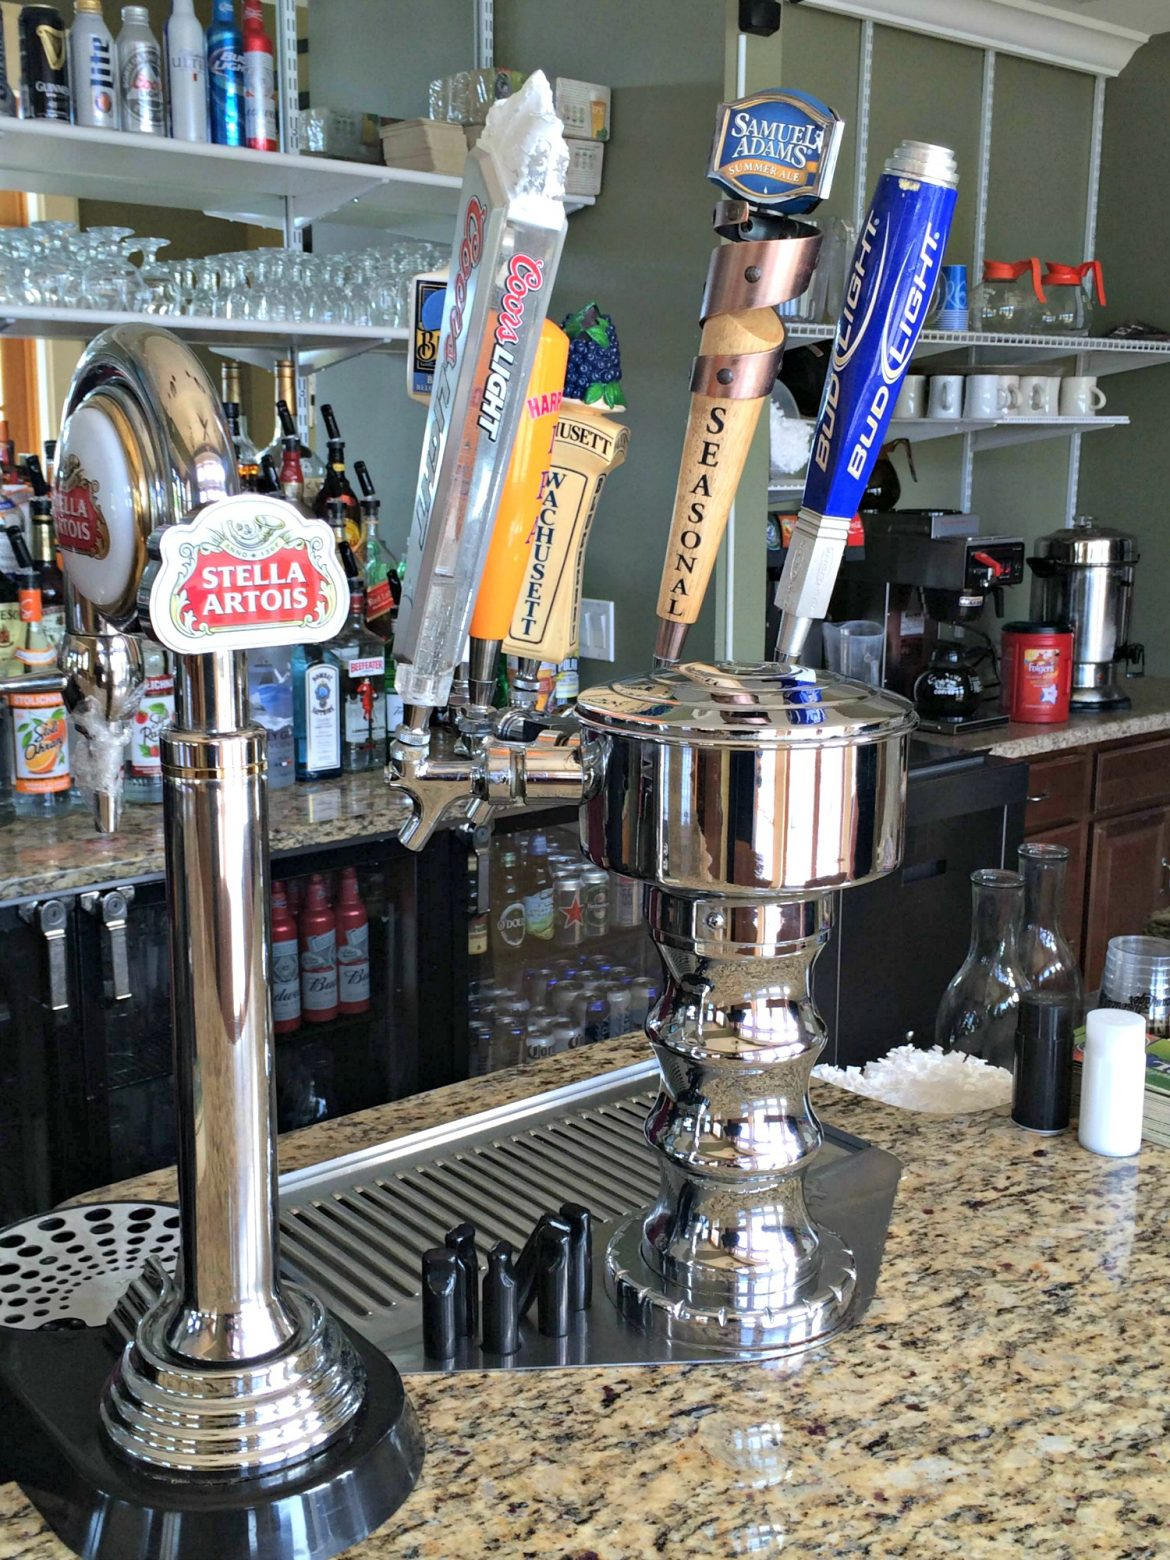 With a new team in charge, there's more on tap at Grill on the Hill than good beer.